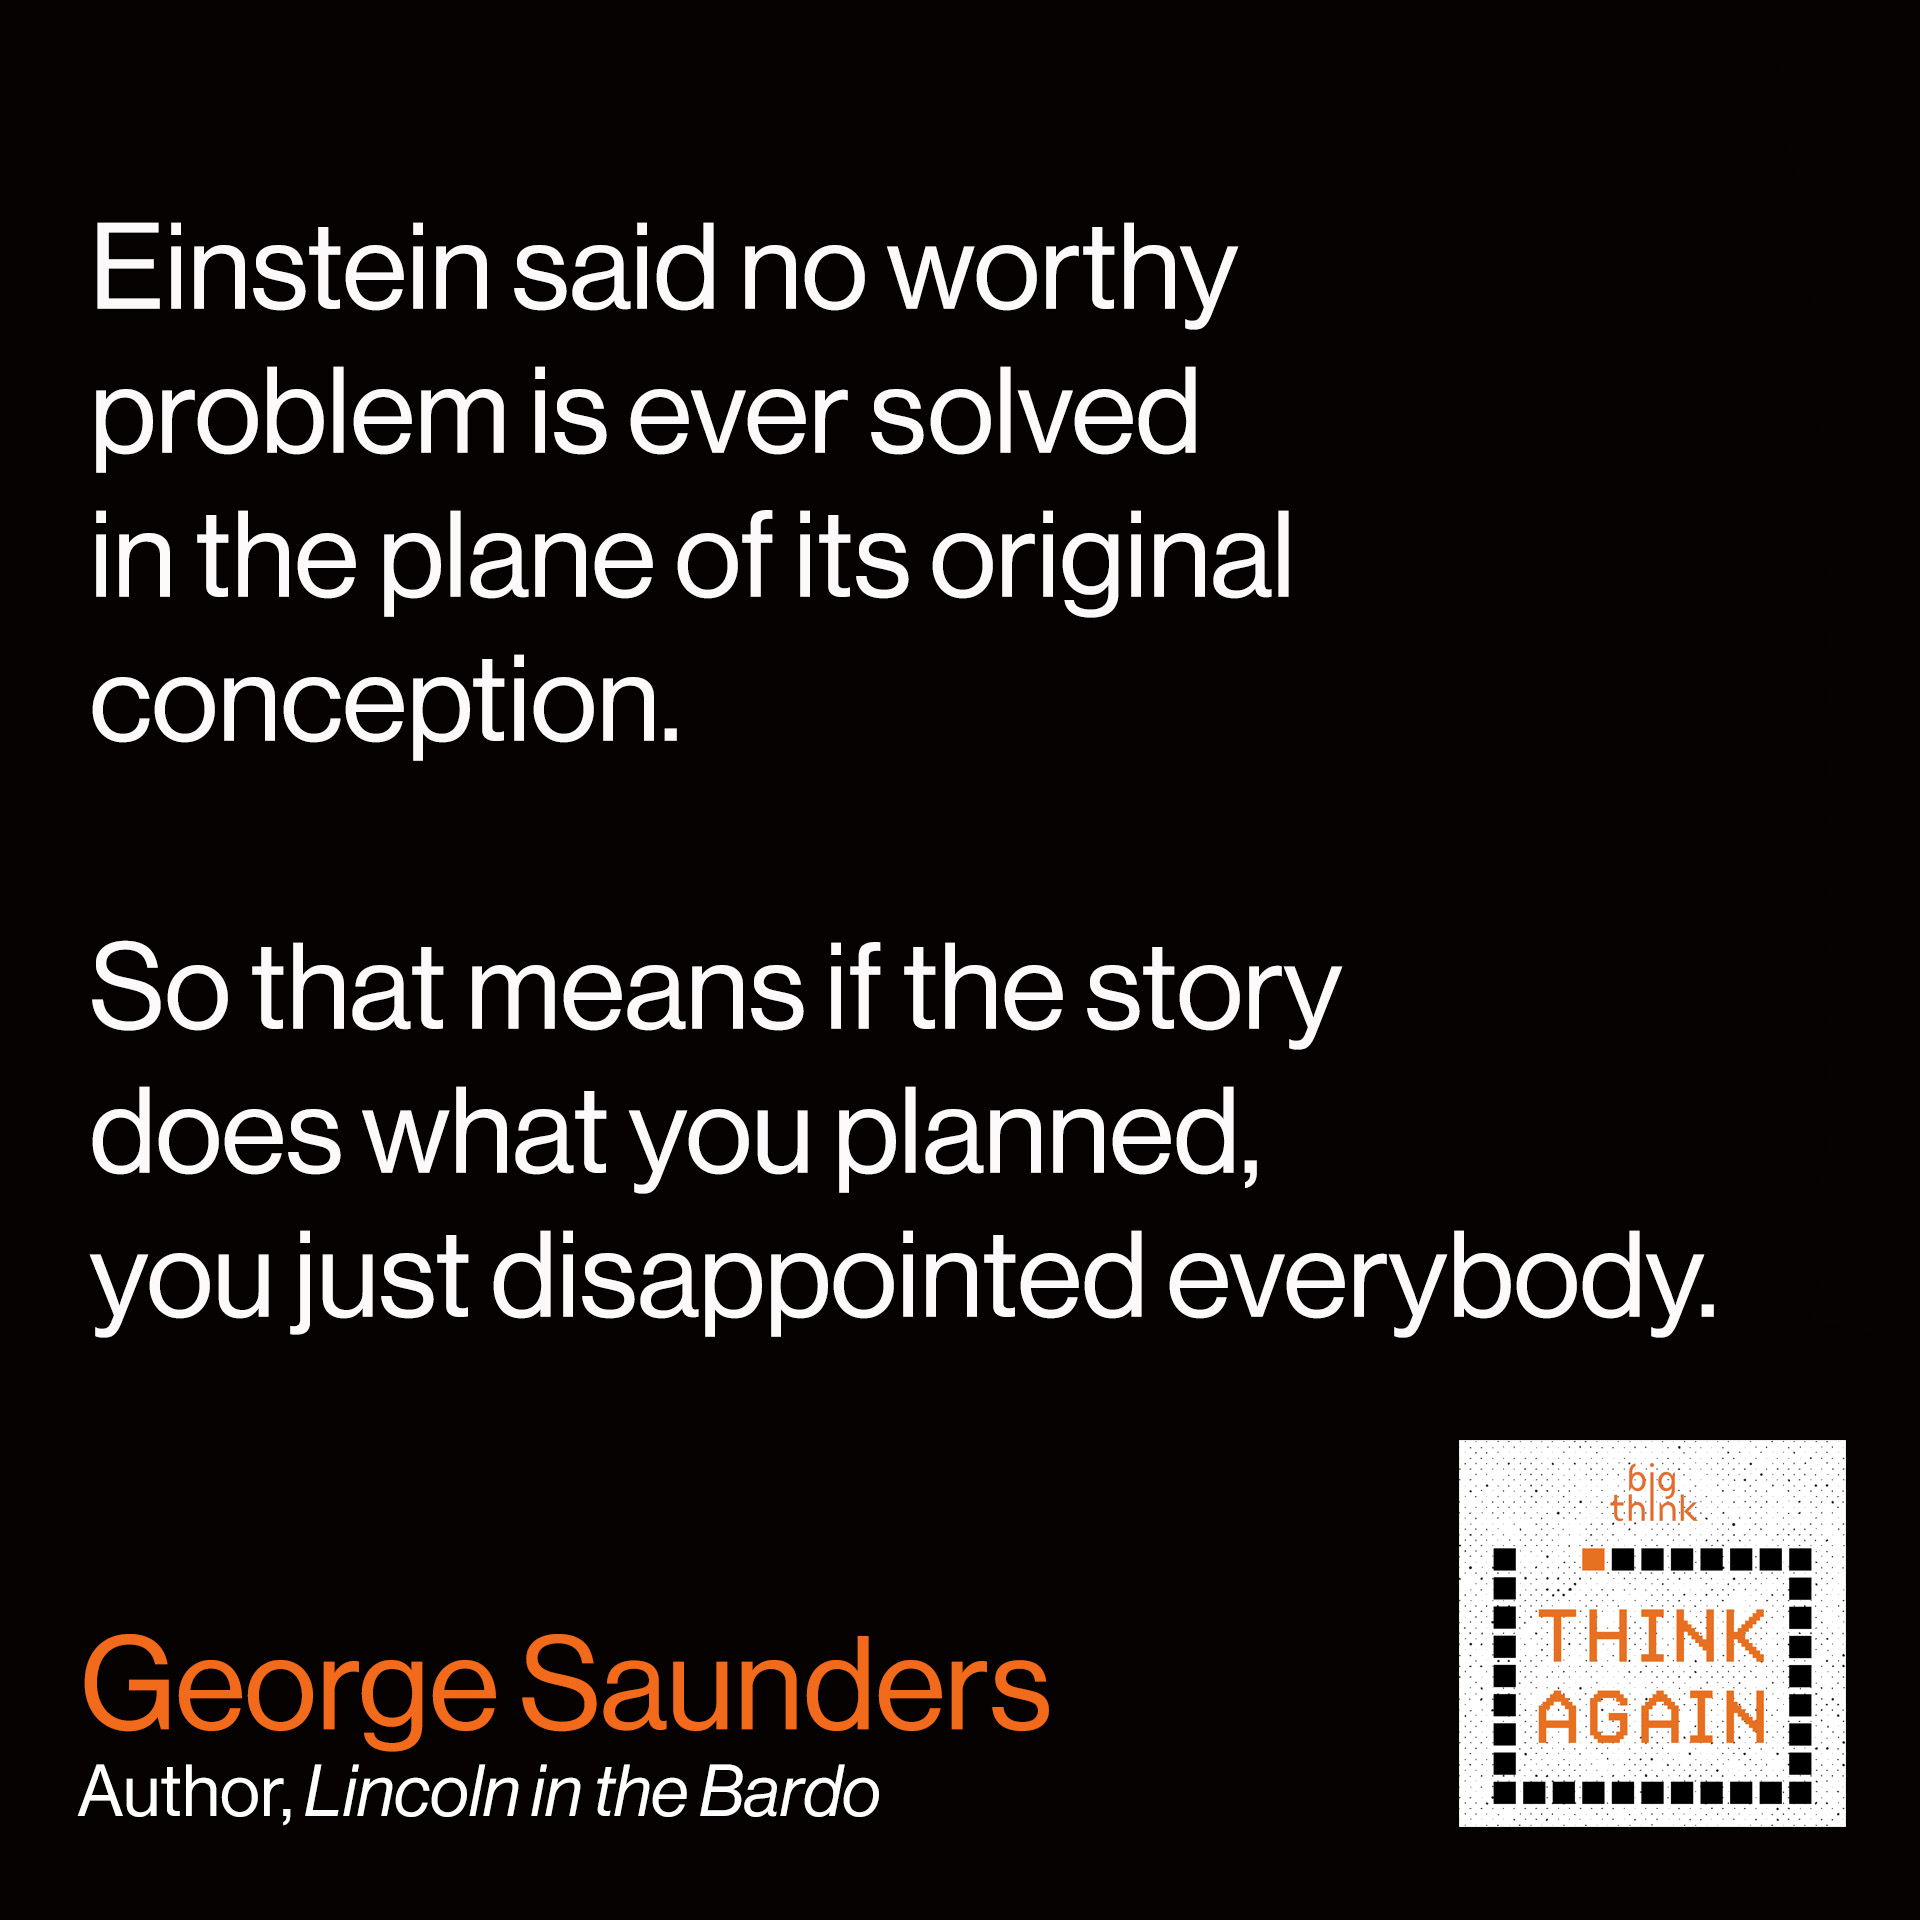 George Saunders Quote:Einstein said no worthy problem is ever solved in the plane of its original conception. So that means if the story does what you planned, you just disappointed everybody.